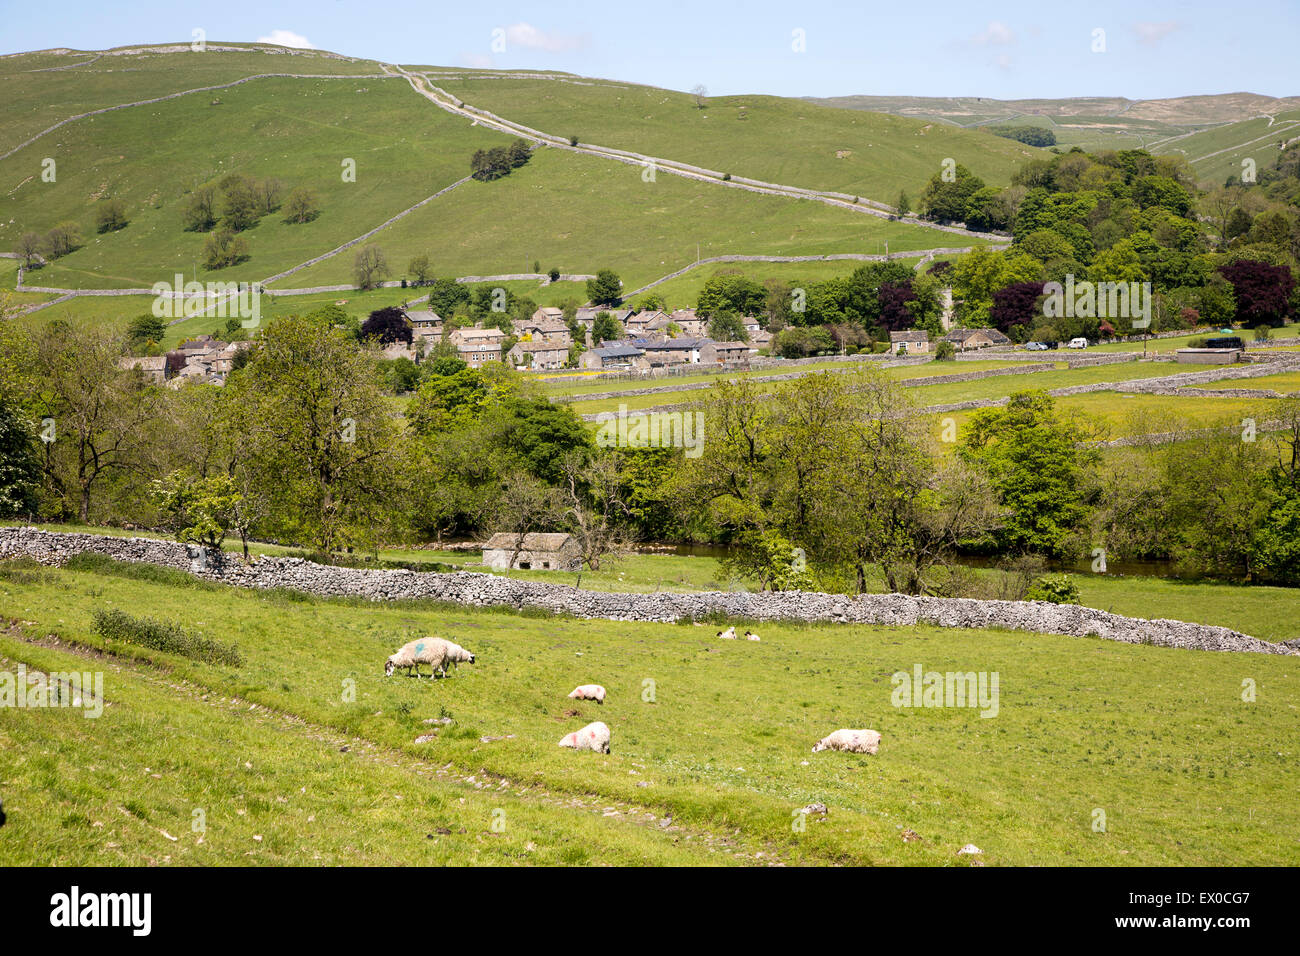 River Wharfe valley, Wharfedale, Kettlewell village, Yorkshire Dales national park, England, UK - Stock Image